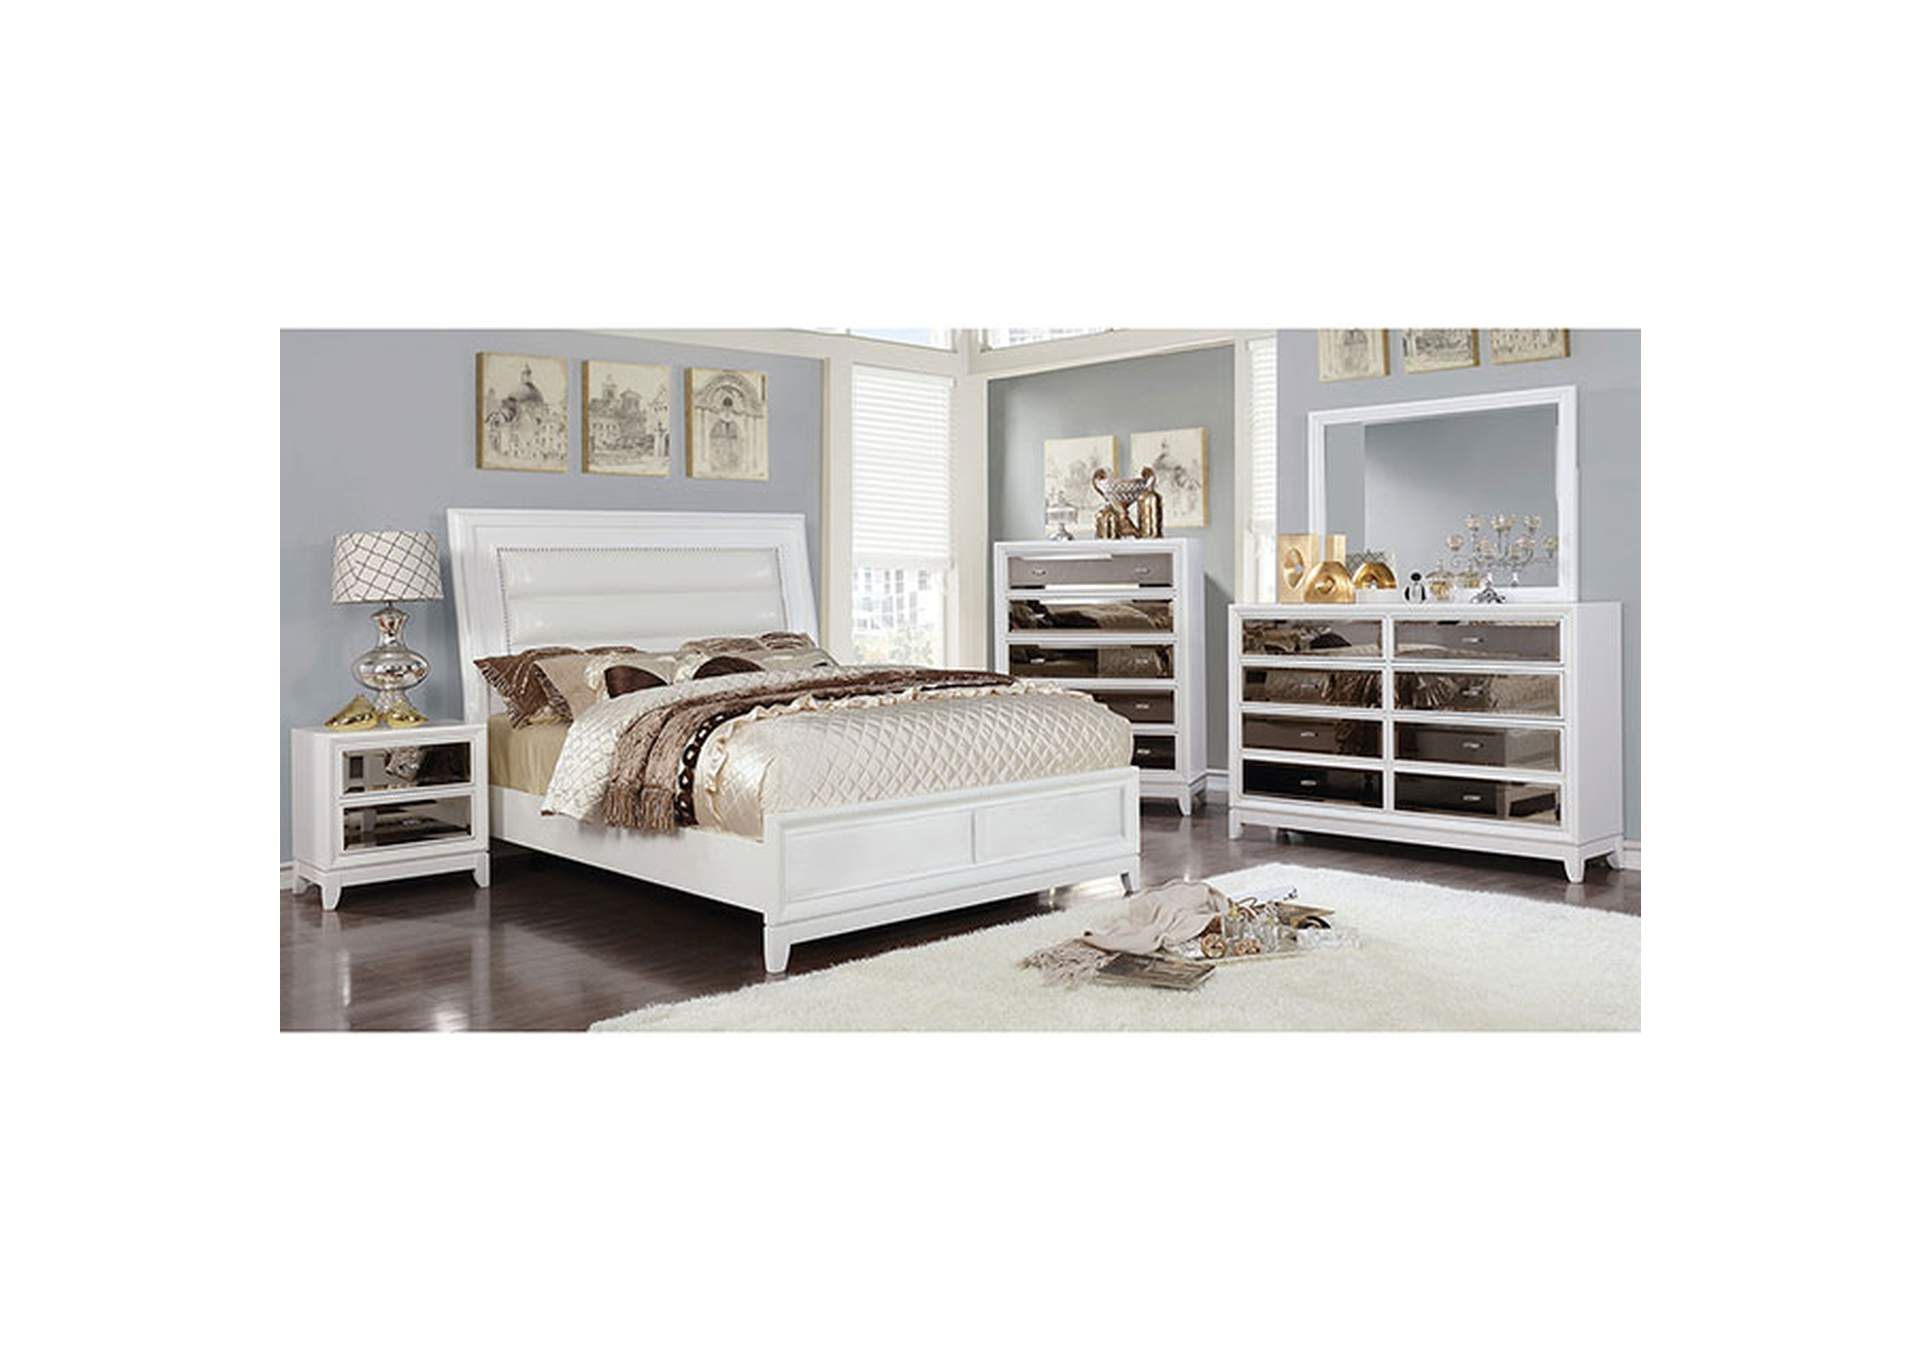 Golva White Upholstered Queen Panel Bed,Furniture of America